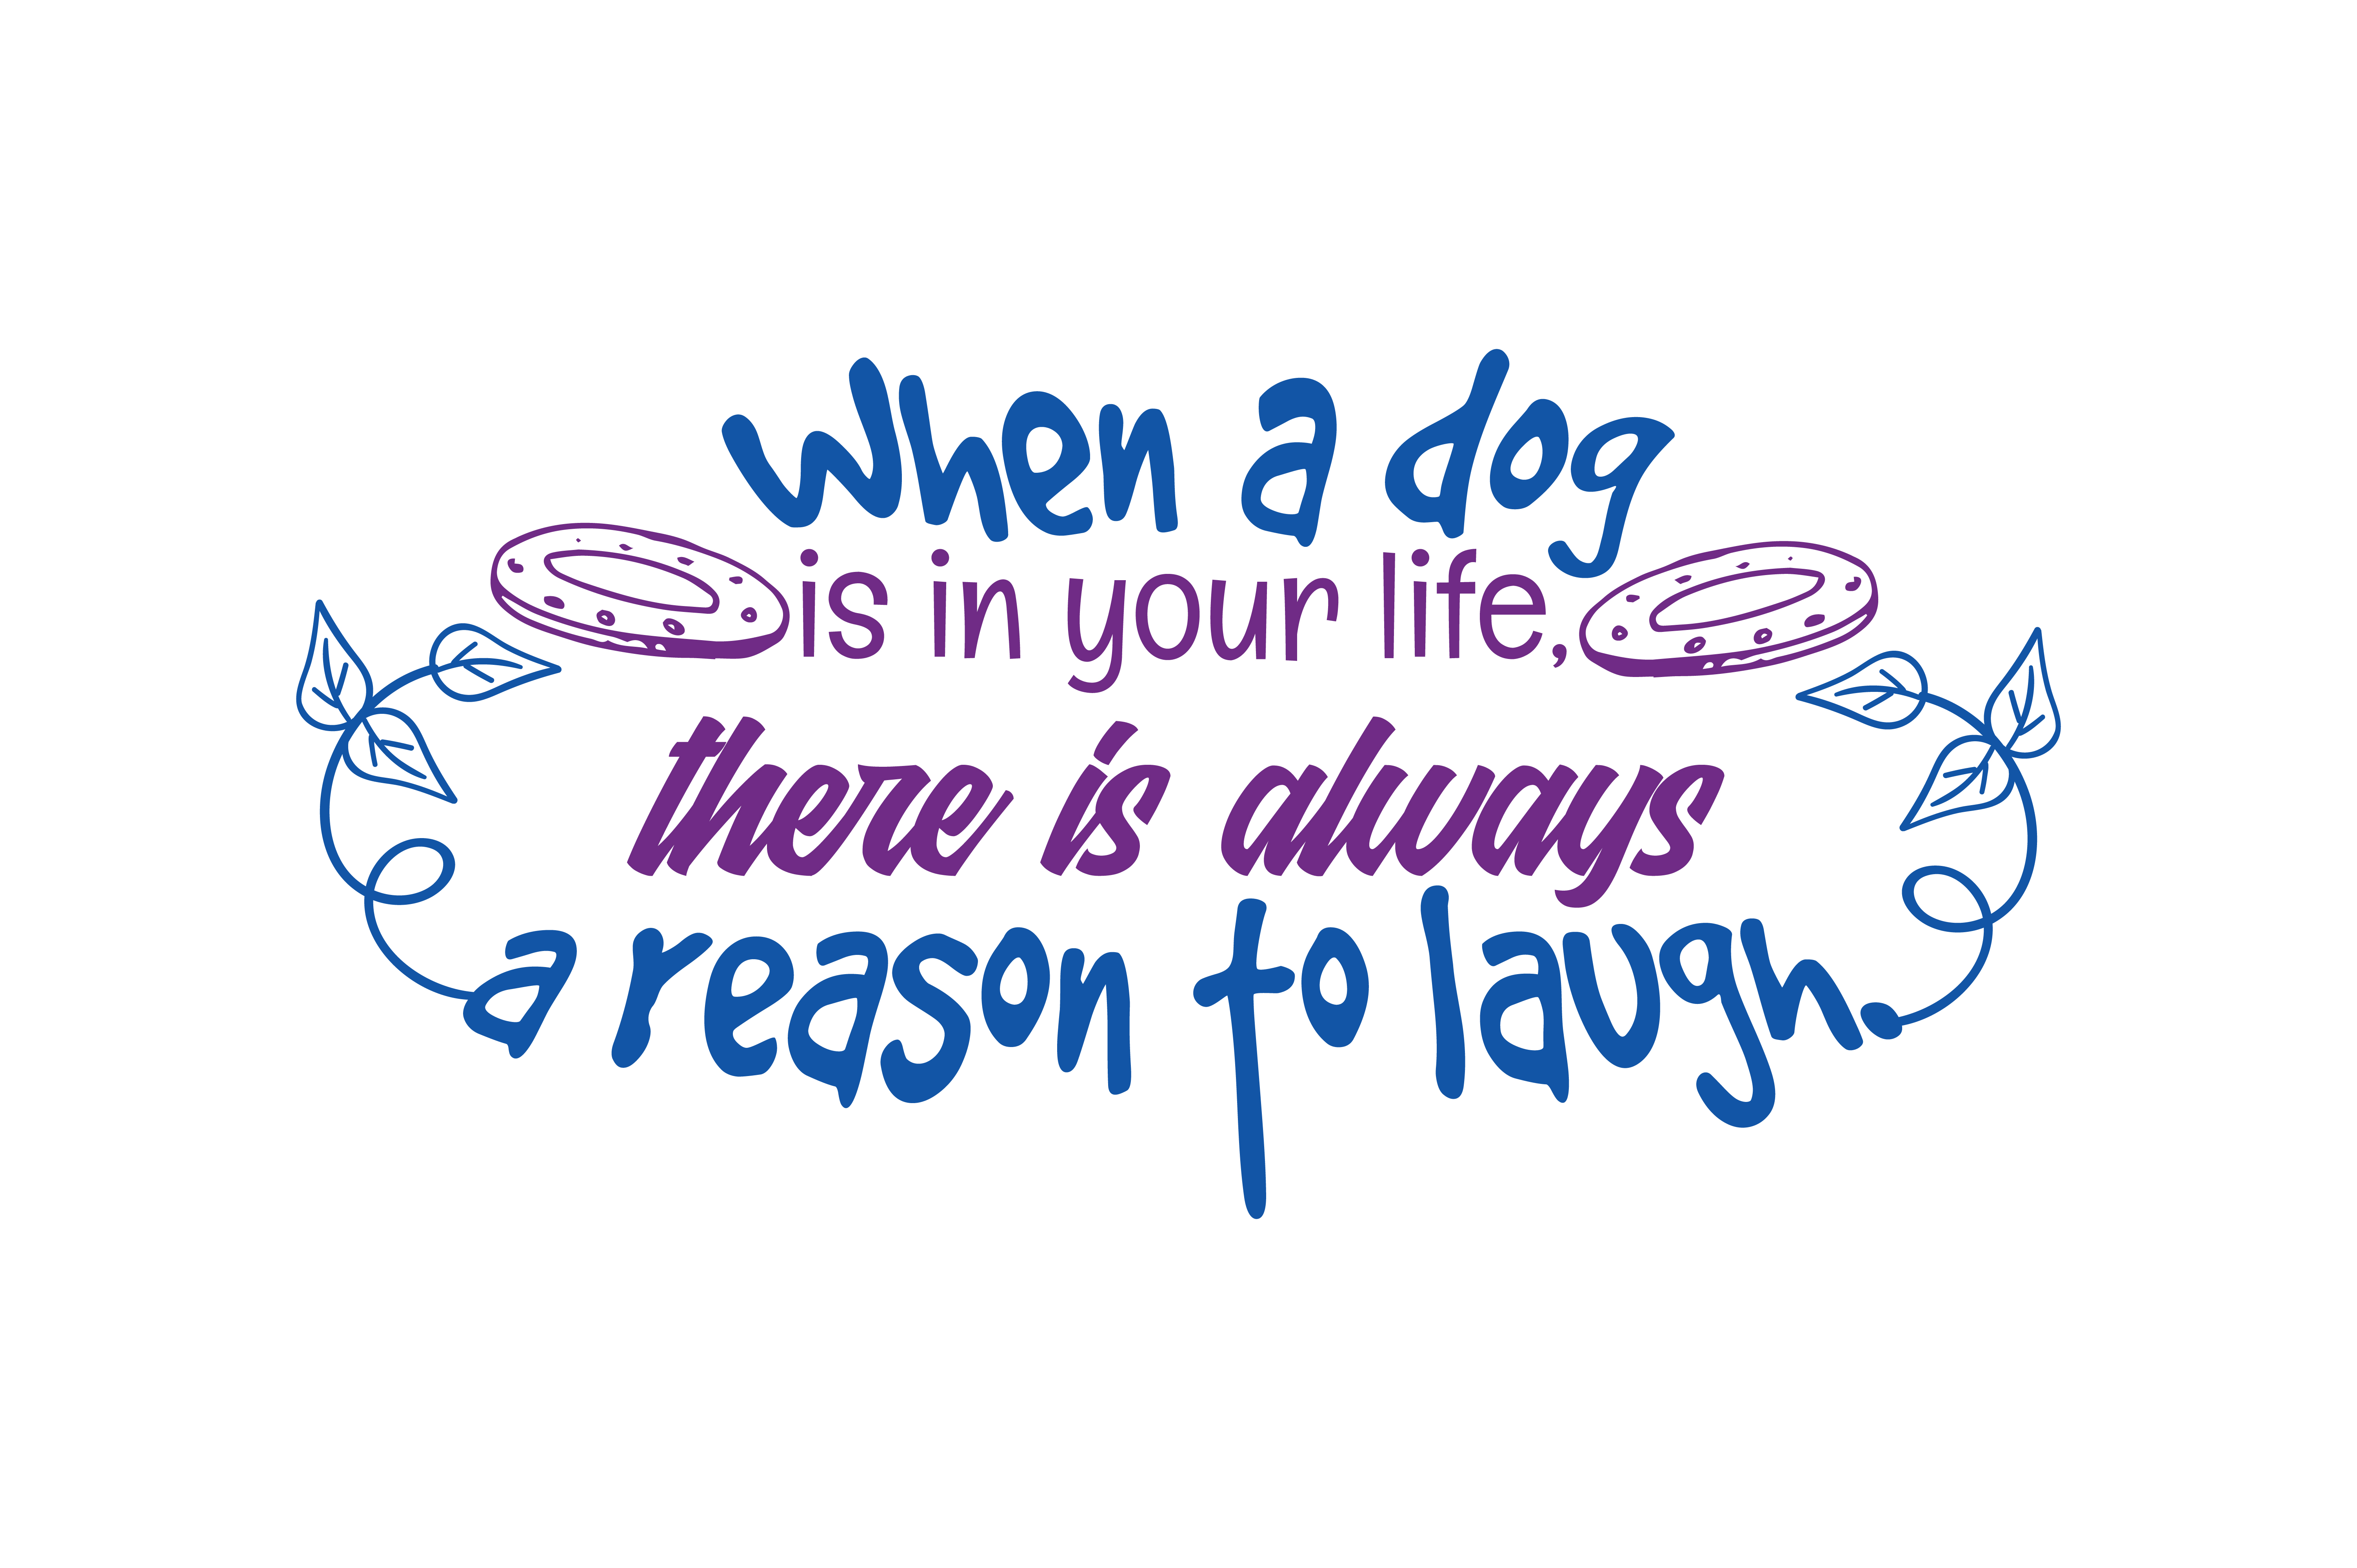 Download Free When A God Is In Your Life There Is Always A Respon To Laugh for Cricut Explore, Silhouette and other cutting machines.